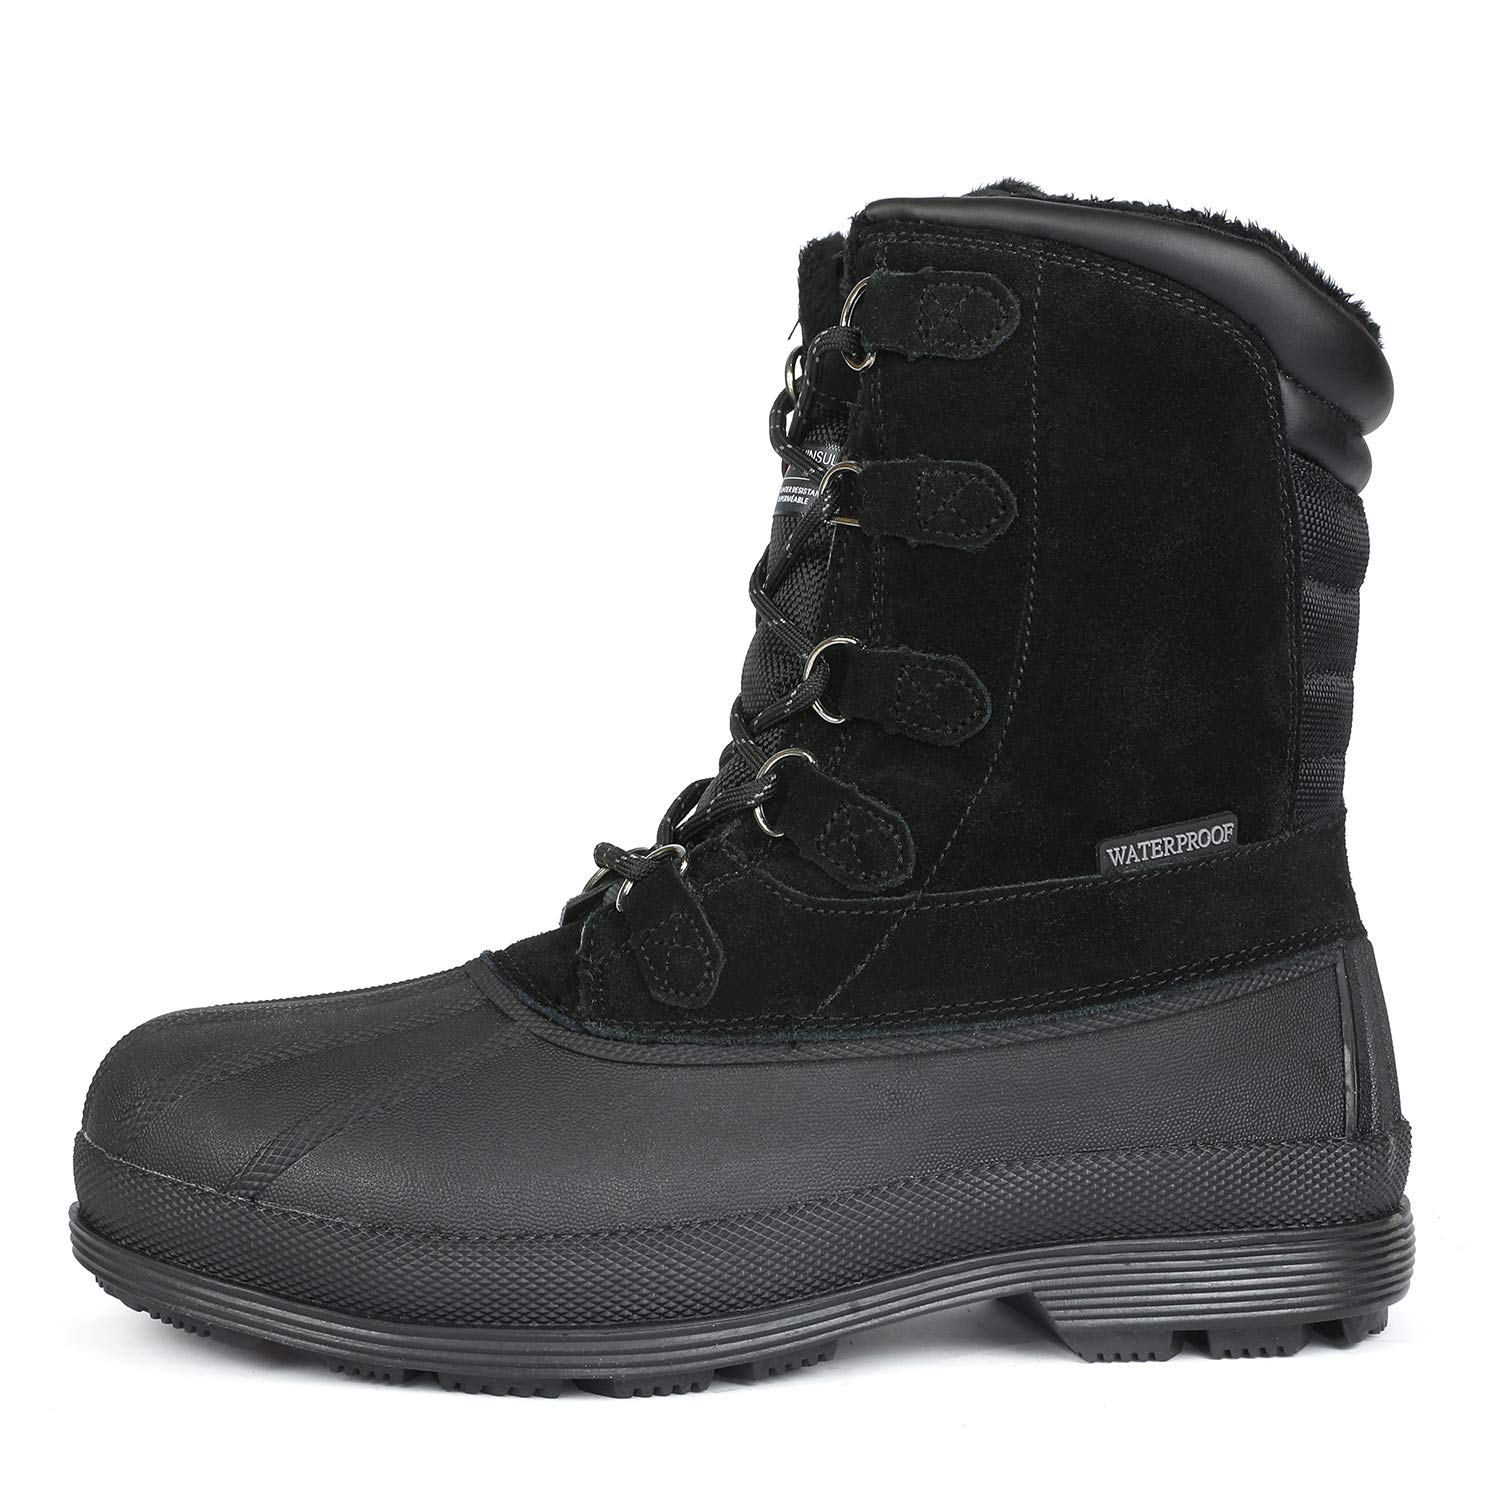 d2846601070 arctiv8 Men's 170390-M Insulated Waterproof Work Snow Boots